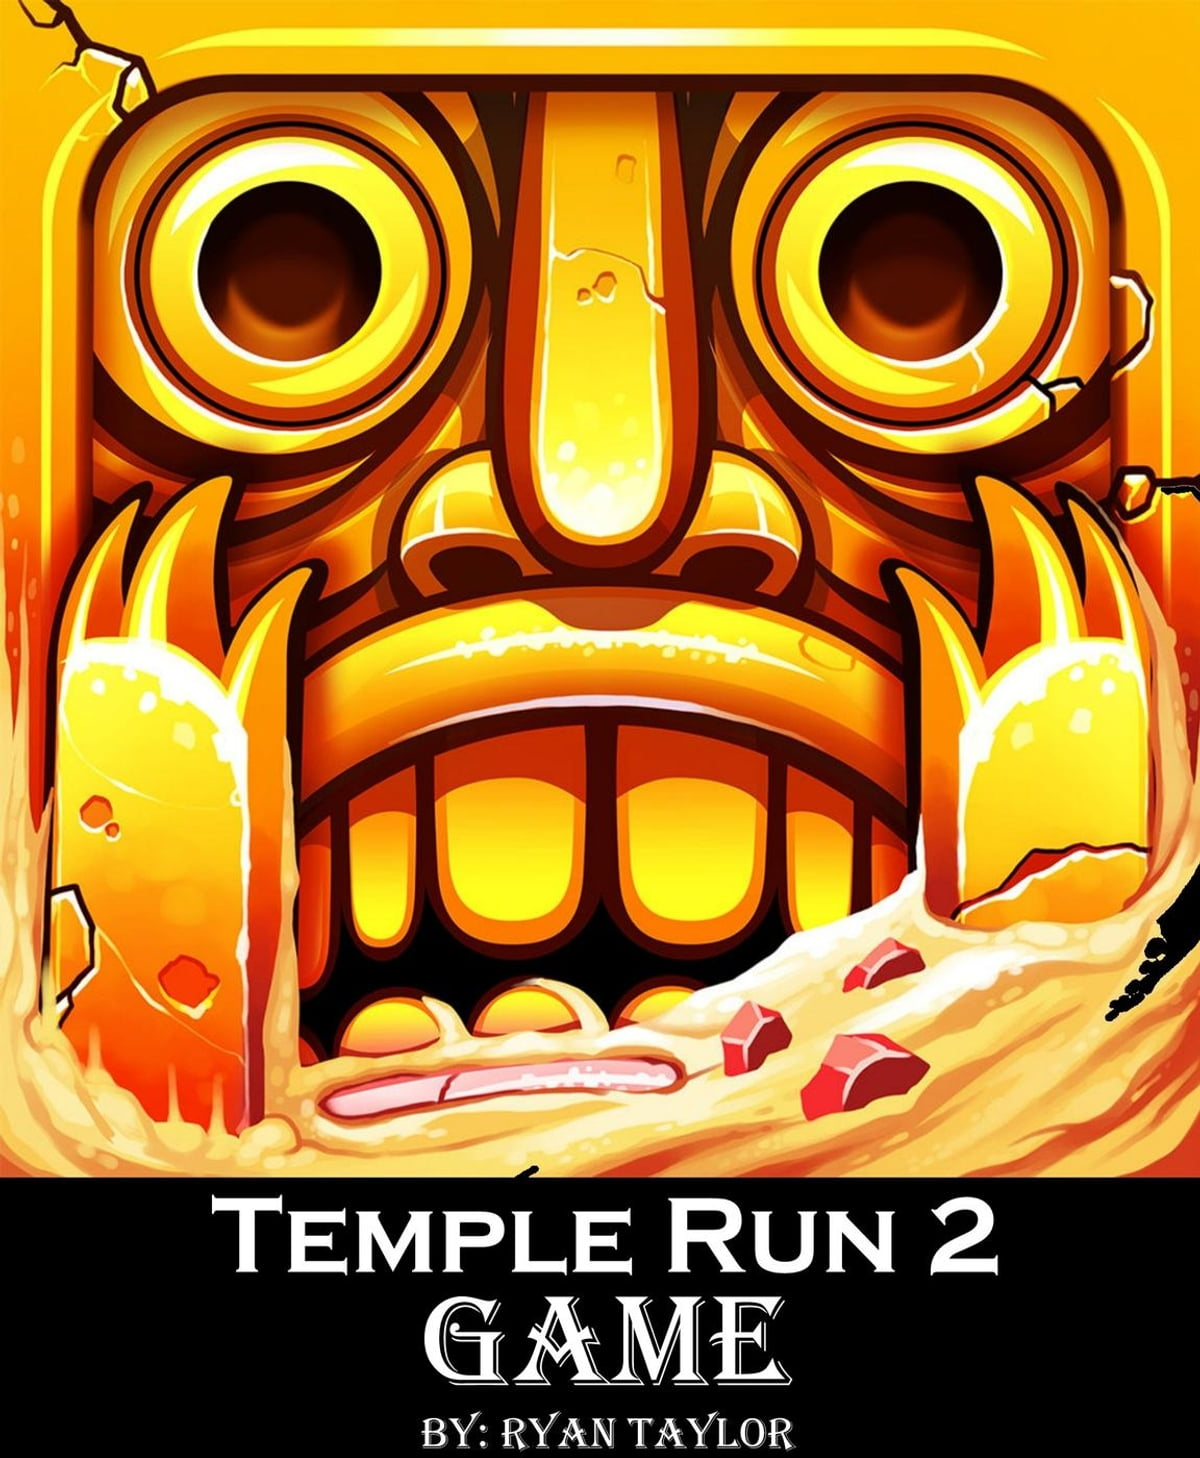 Temple Run 2 Game An Unofficial Players Guide To Download And Play World Best Android Game With Top Tips Hack Cheats Tricks Strategy Ebooks By - roblox death sound editor roblox promo codes